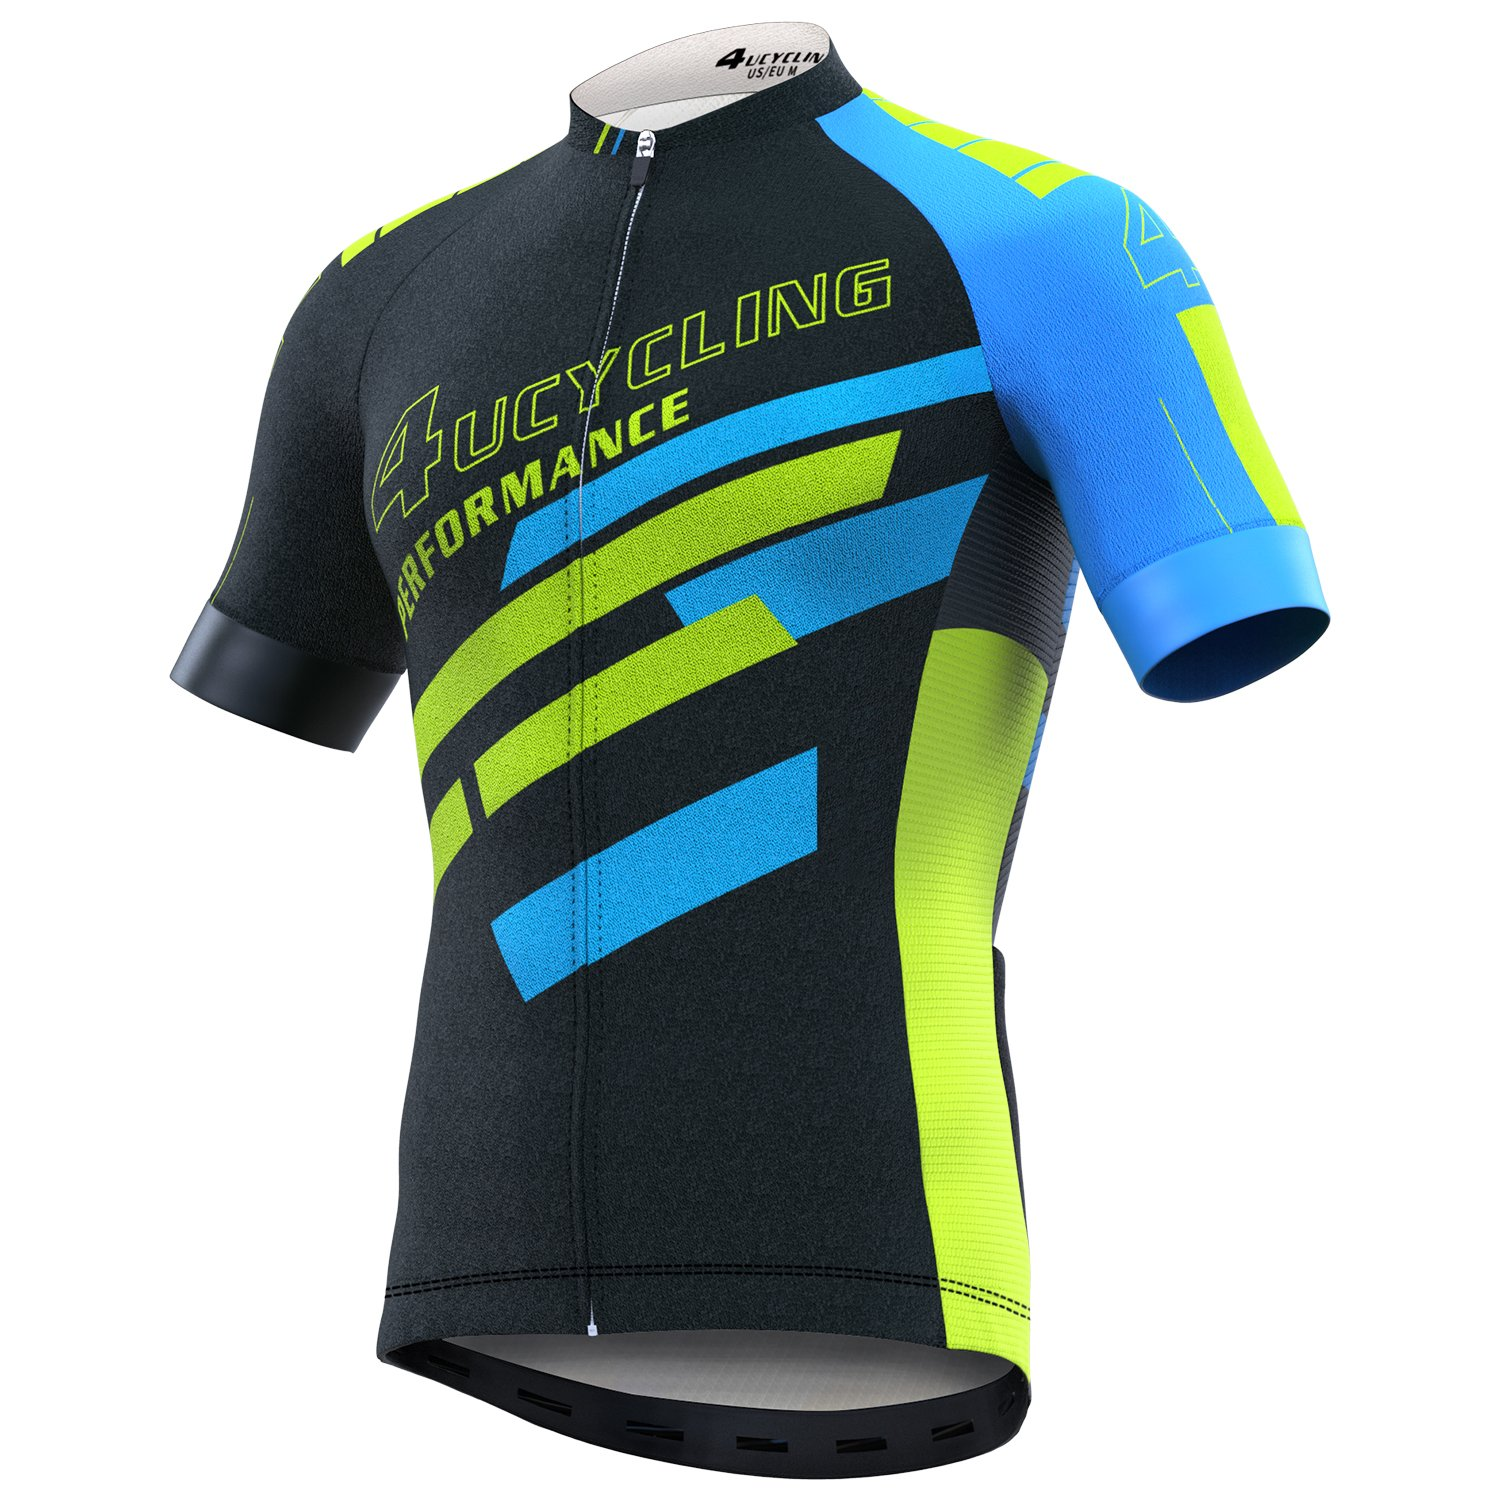 4Ucycling Herren Bike Short Sleeve Jersey Full Zip Feuchtigkeitstransport, Atmungsaktiv Running Top – Shirt